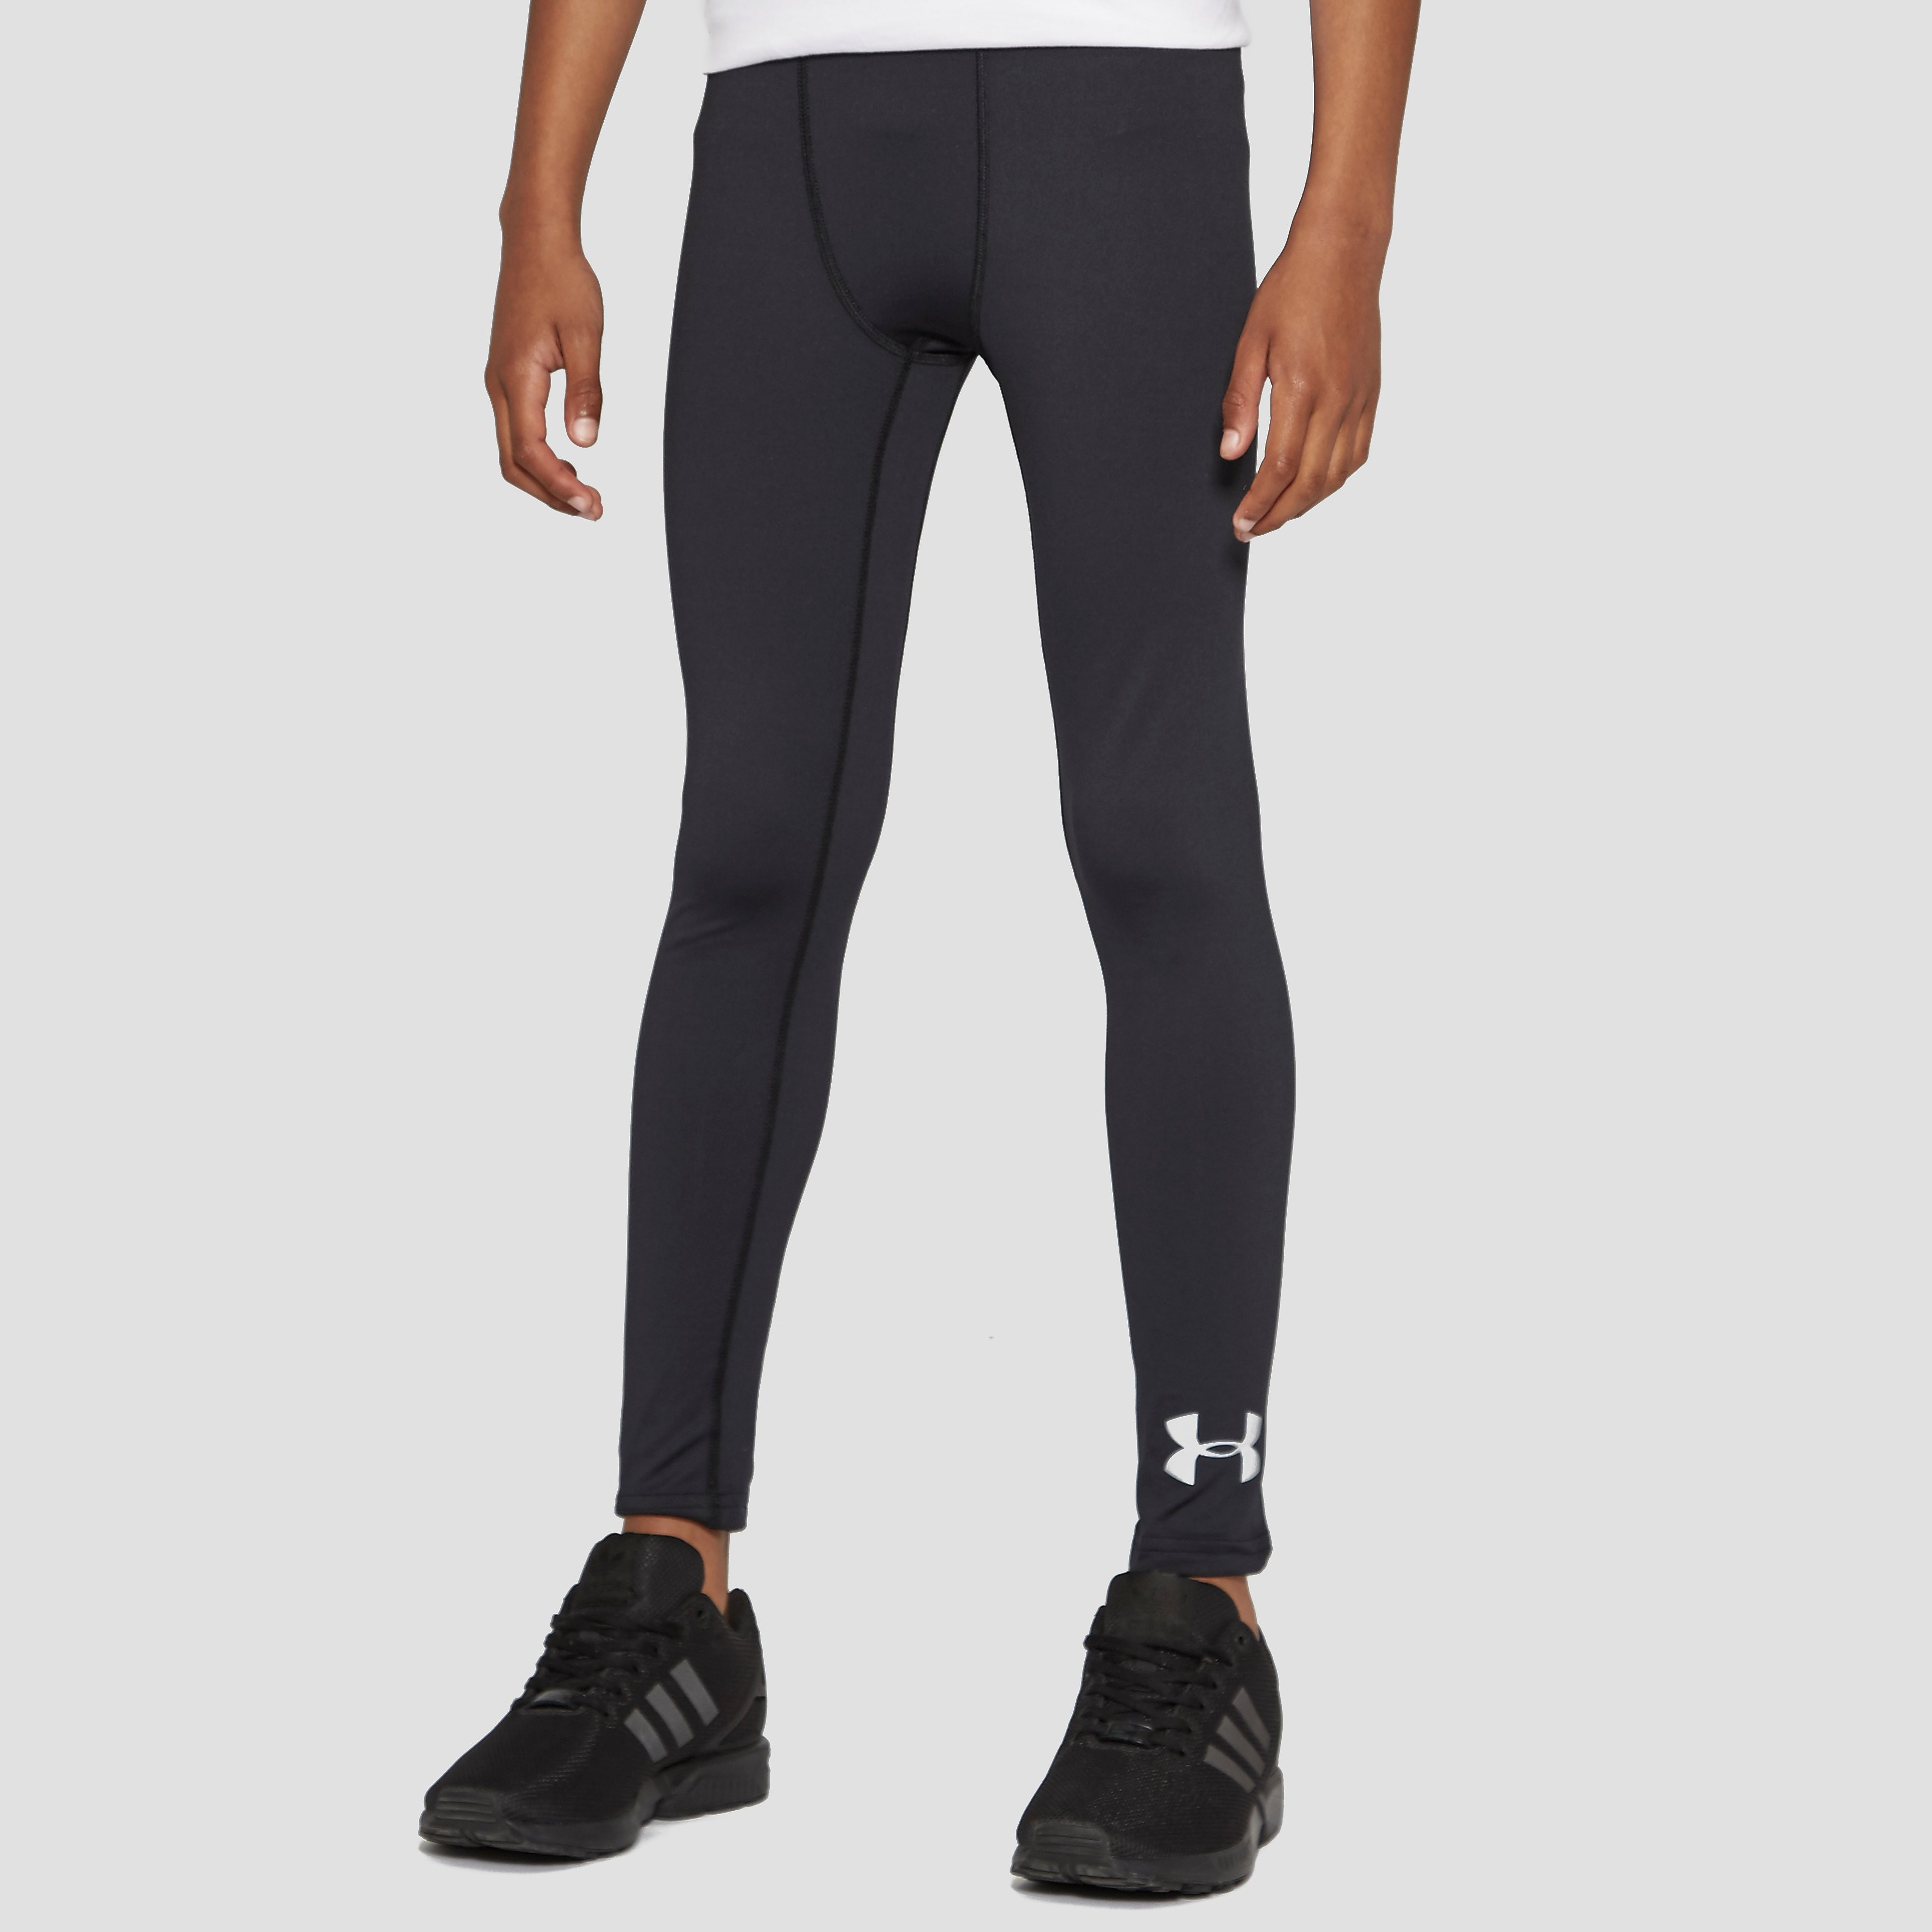 Under Armour ColdGear Armour Junior Boy's Leggings